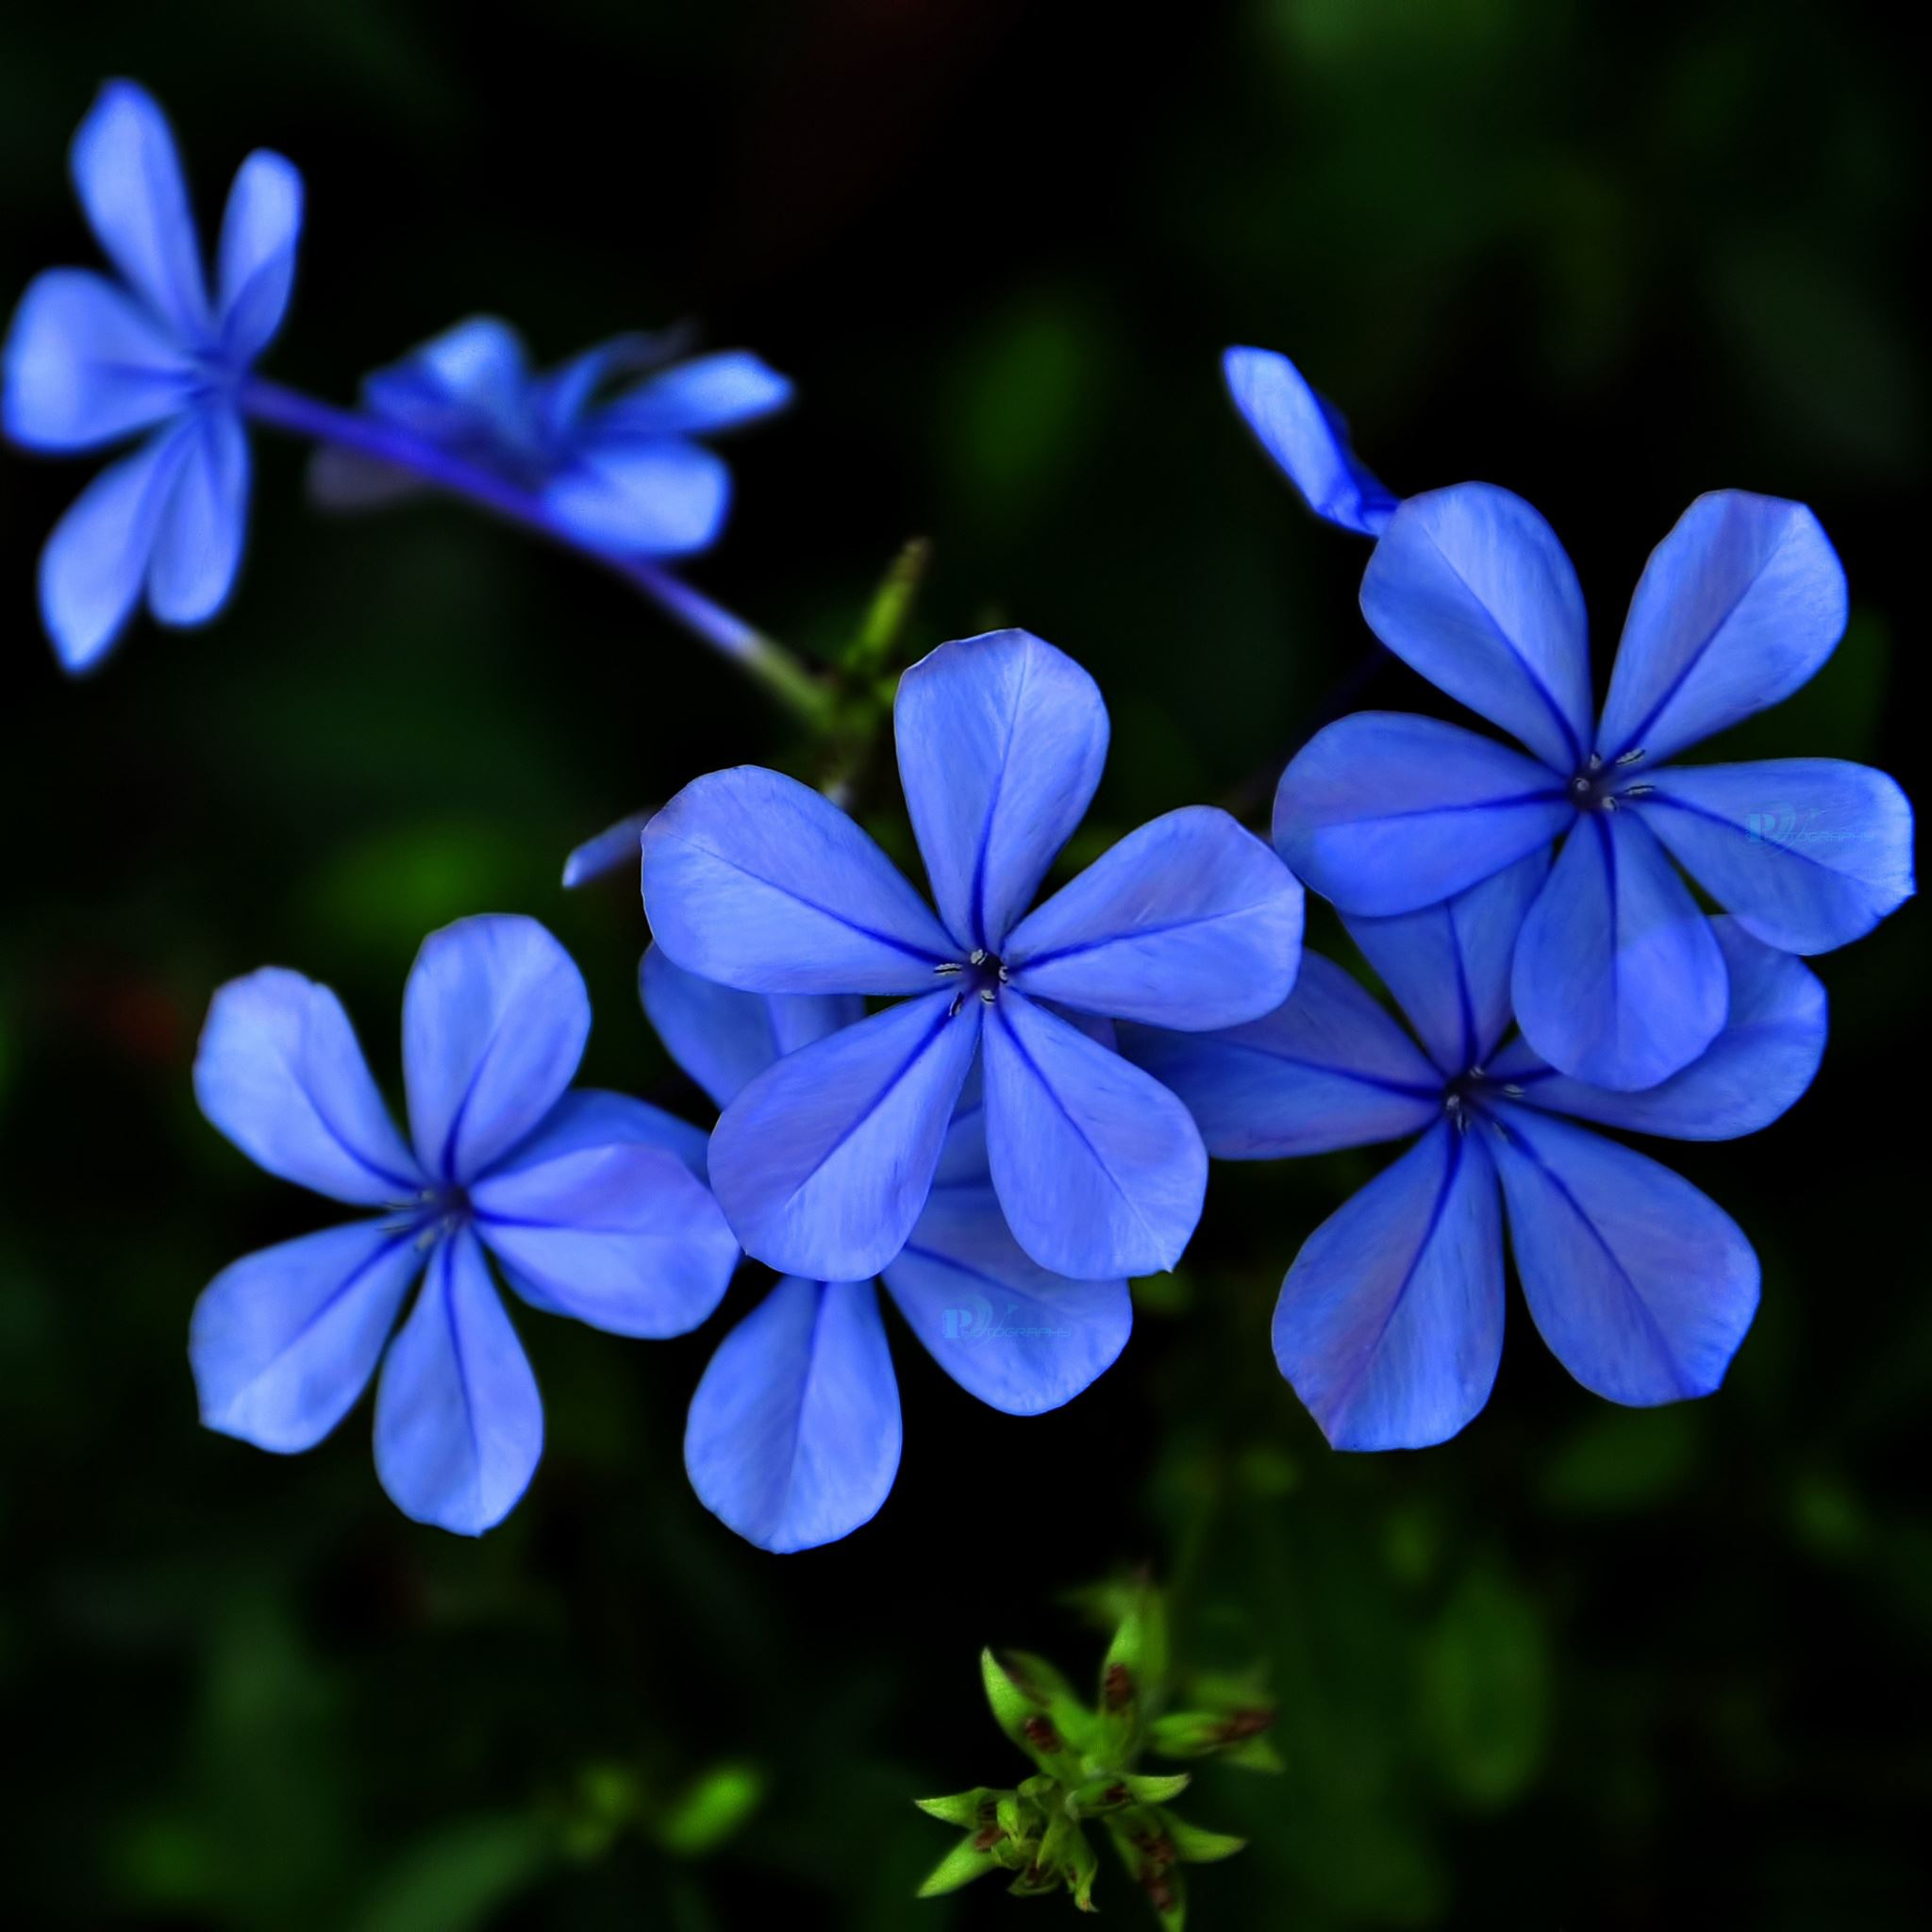 Blue purple flowers ipad air wallpaper download iphone wallpapers blue purple flowers ipad air wallpaper izmirmasajfo